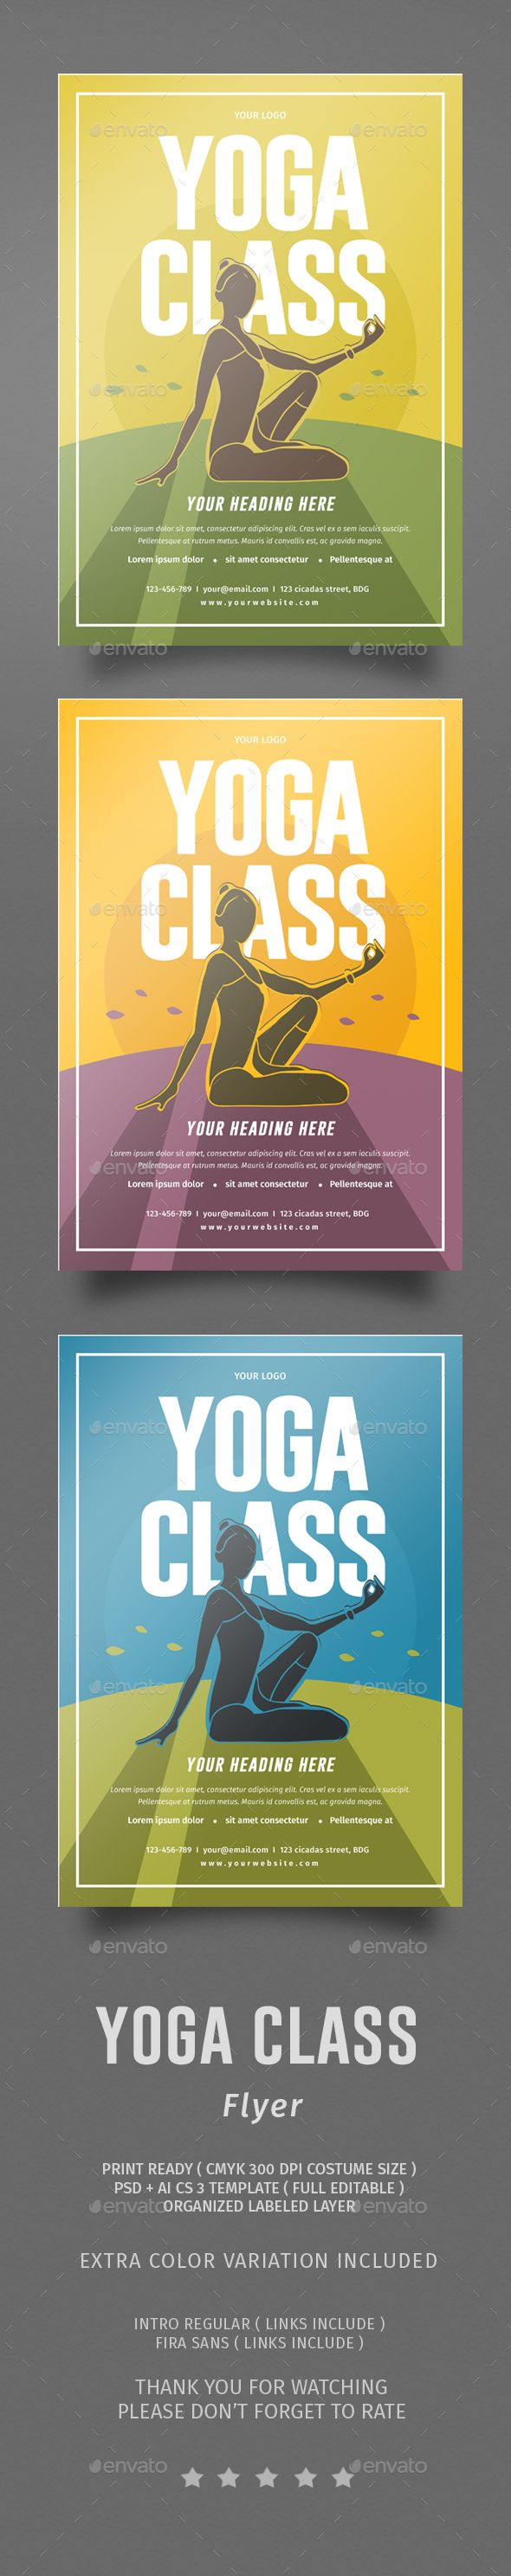 Yoga Class Flyer | Academia de baile, Diseño de folletos y Folletos